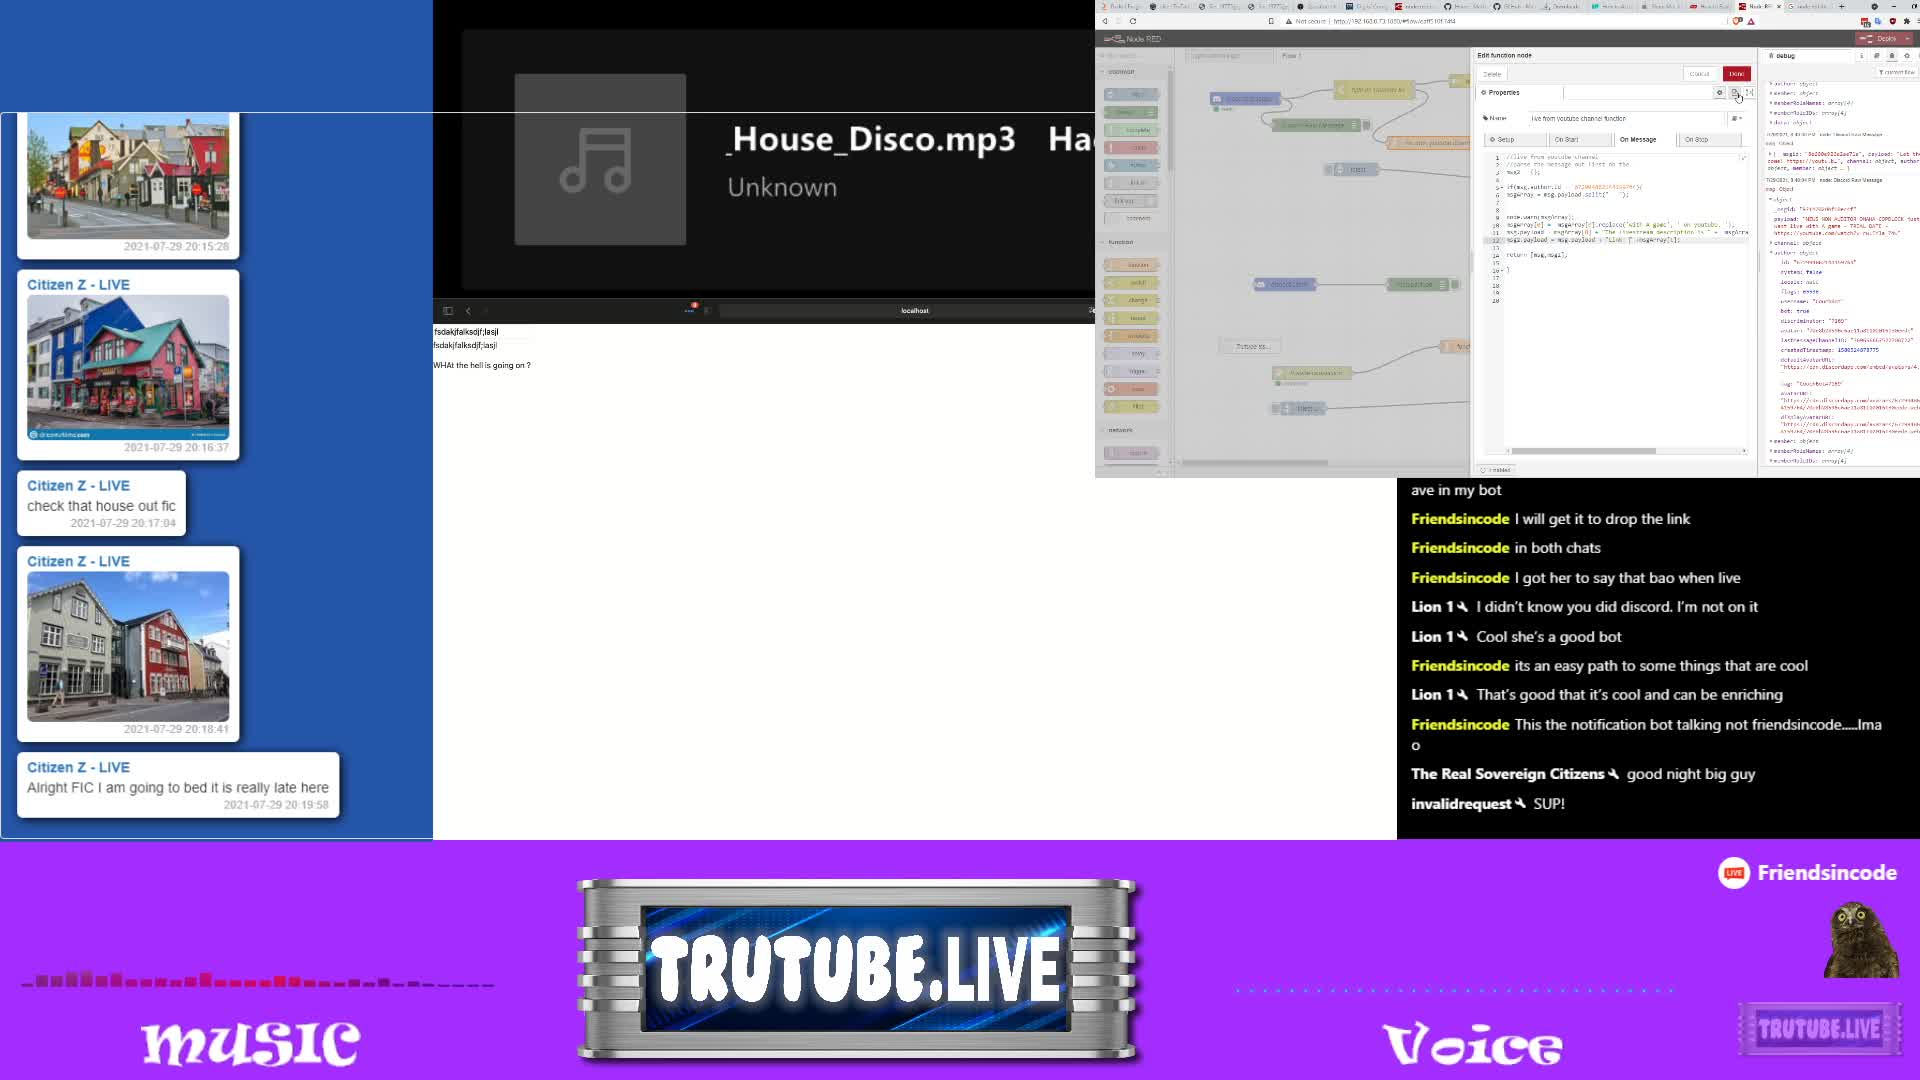 Yet Another Stream on 30-Jul-21-02:47:37